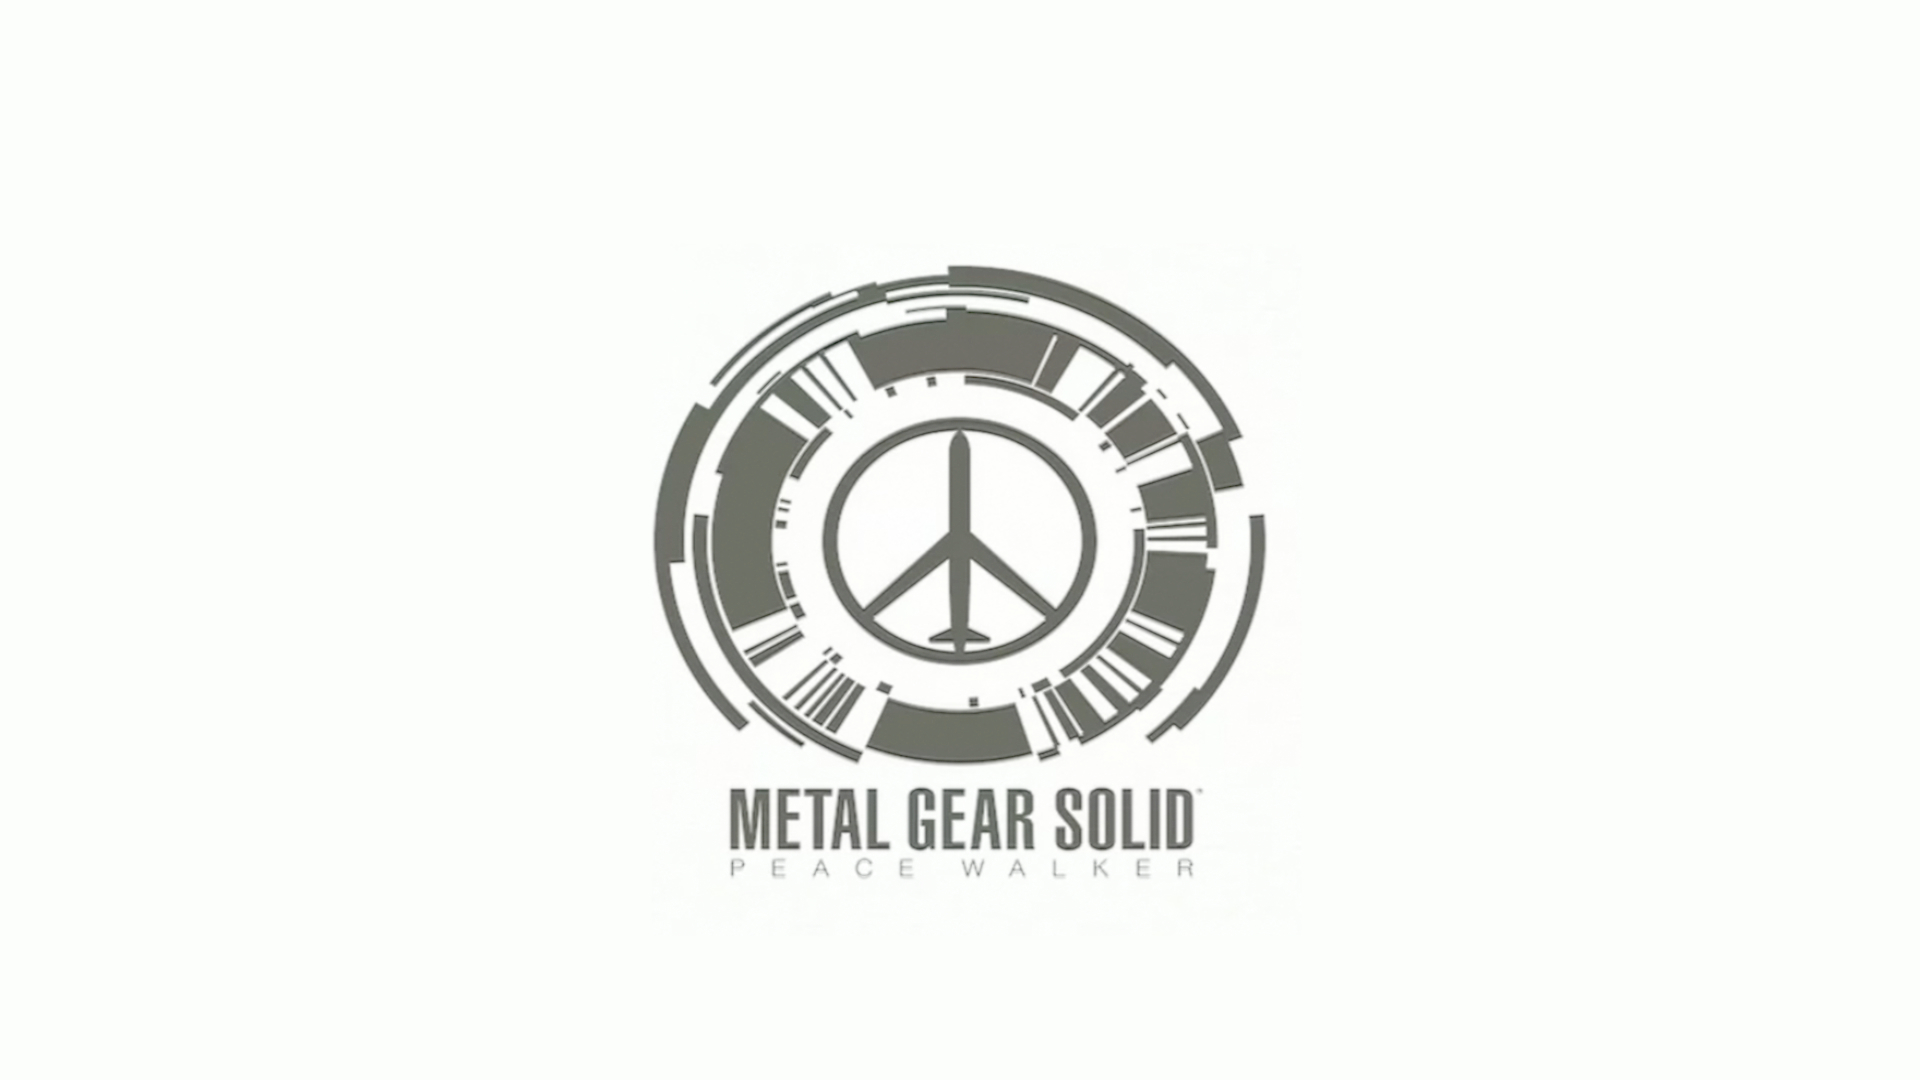 metal Gear solid peace HD Wallpaper